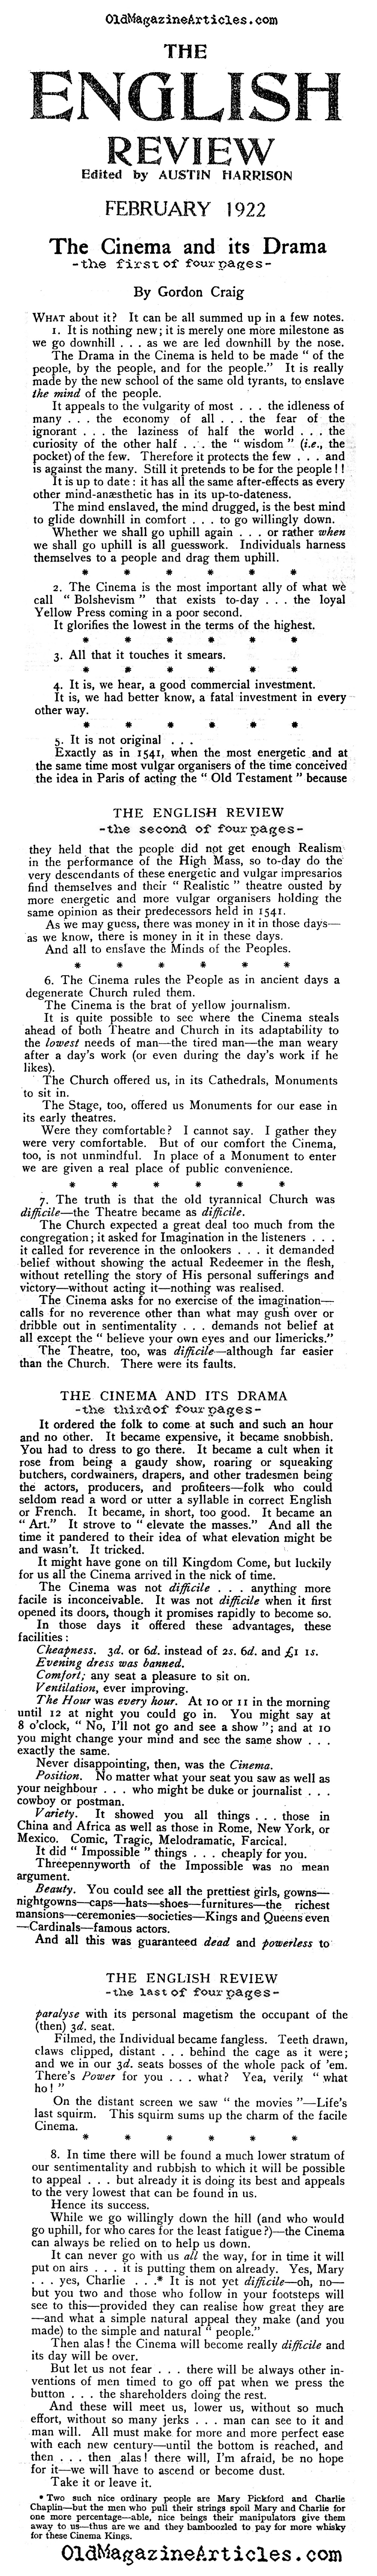 One Thousand Nasty Remarks About Silent Films  (The English Review, 1922)